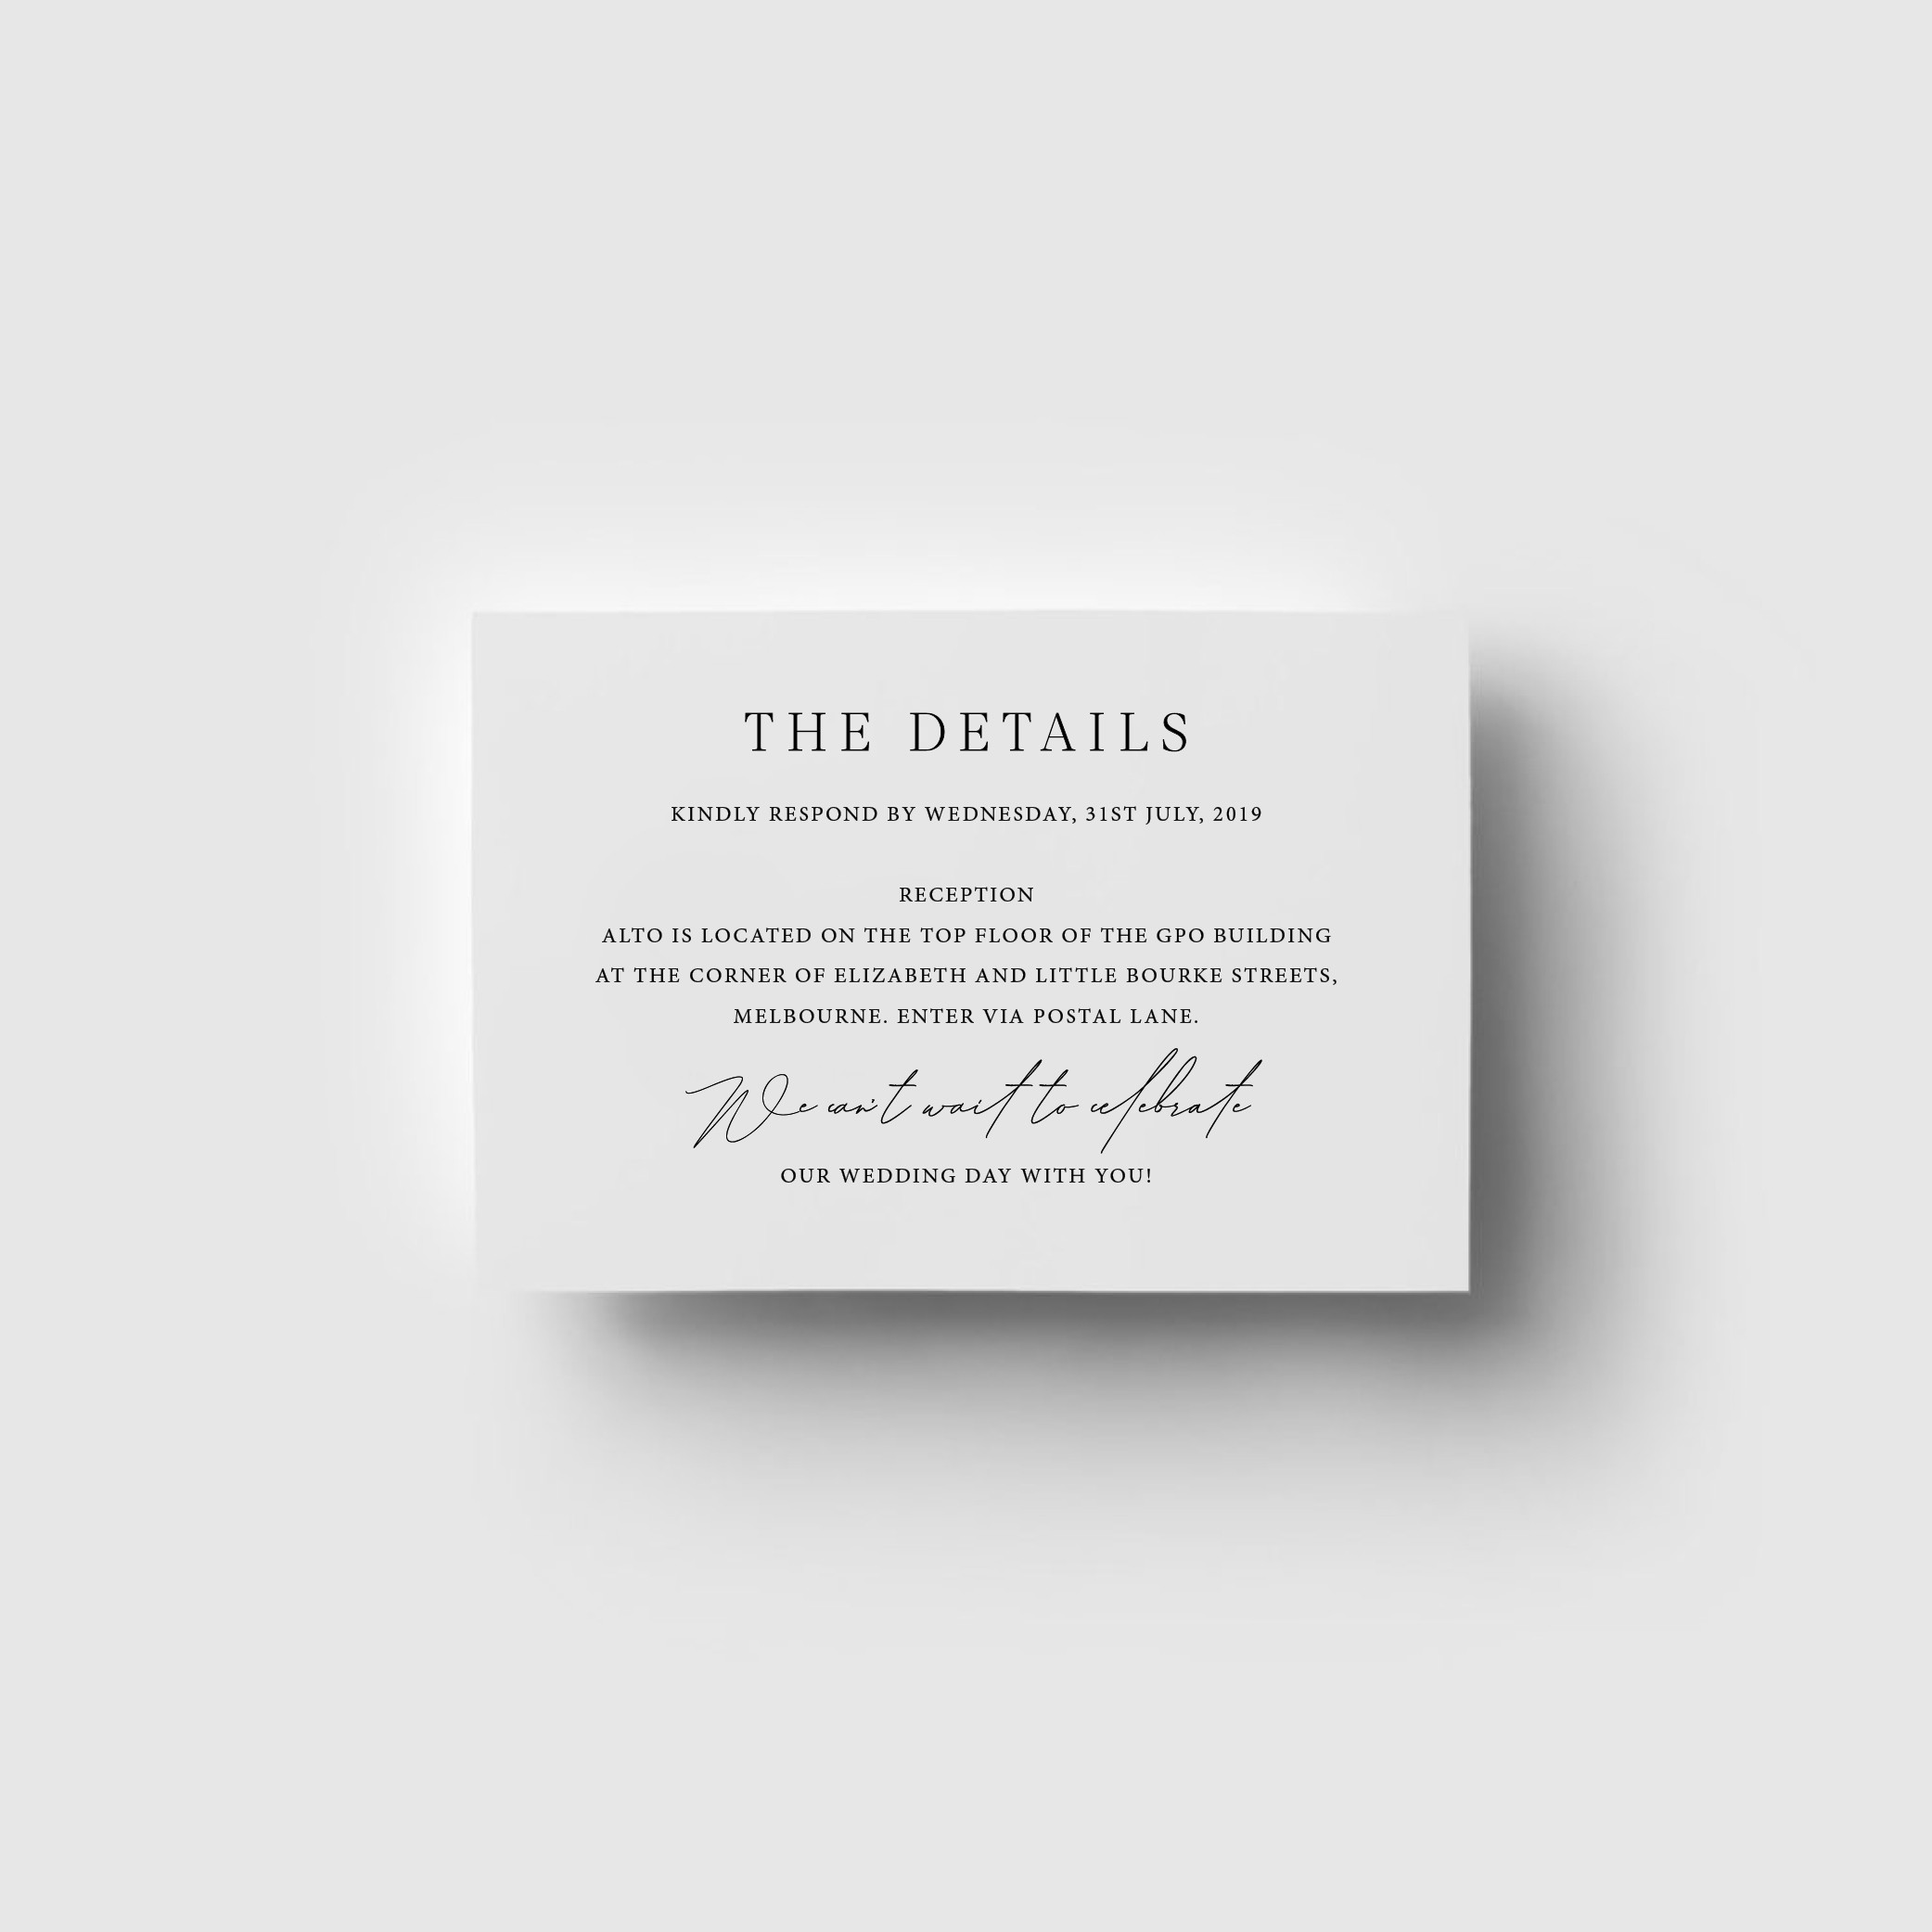 The Details - THE DETAILS | Digital Print